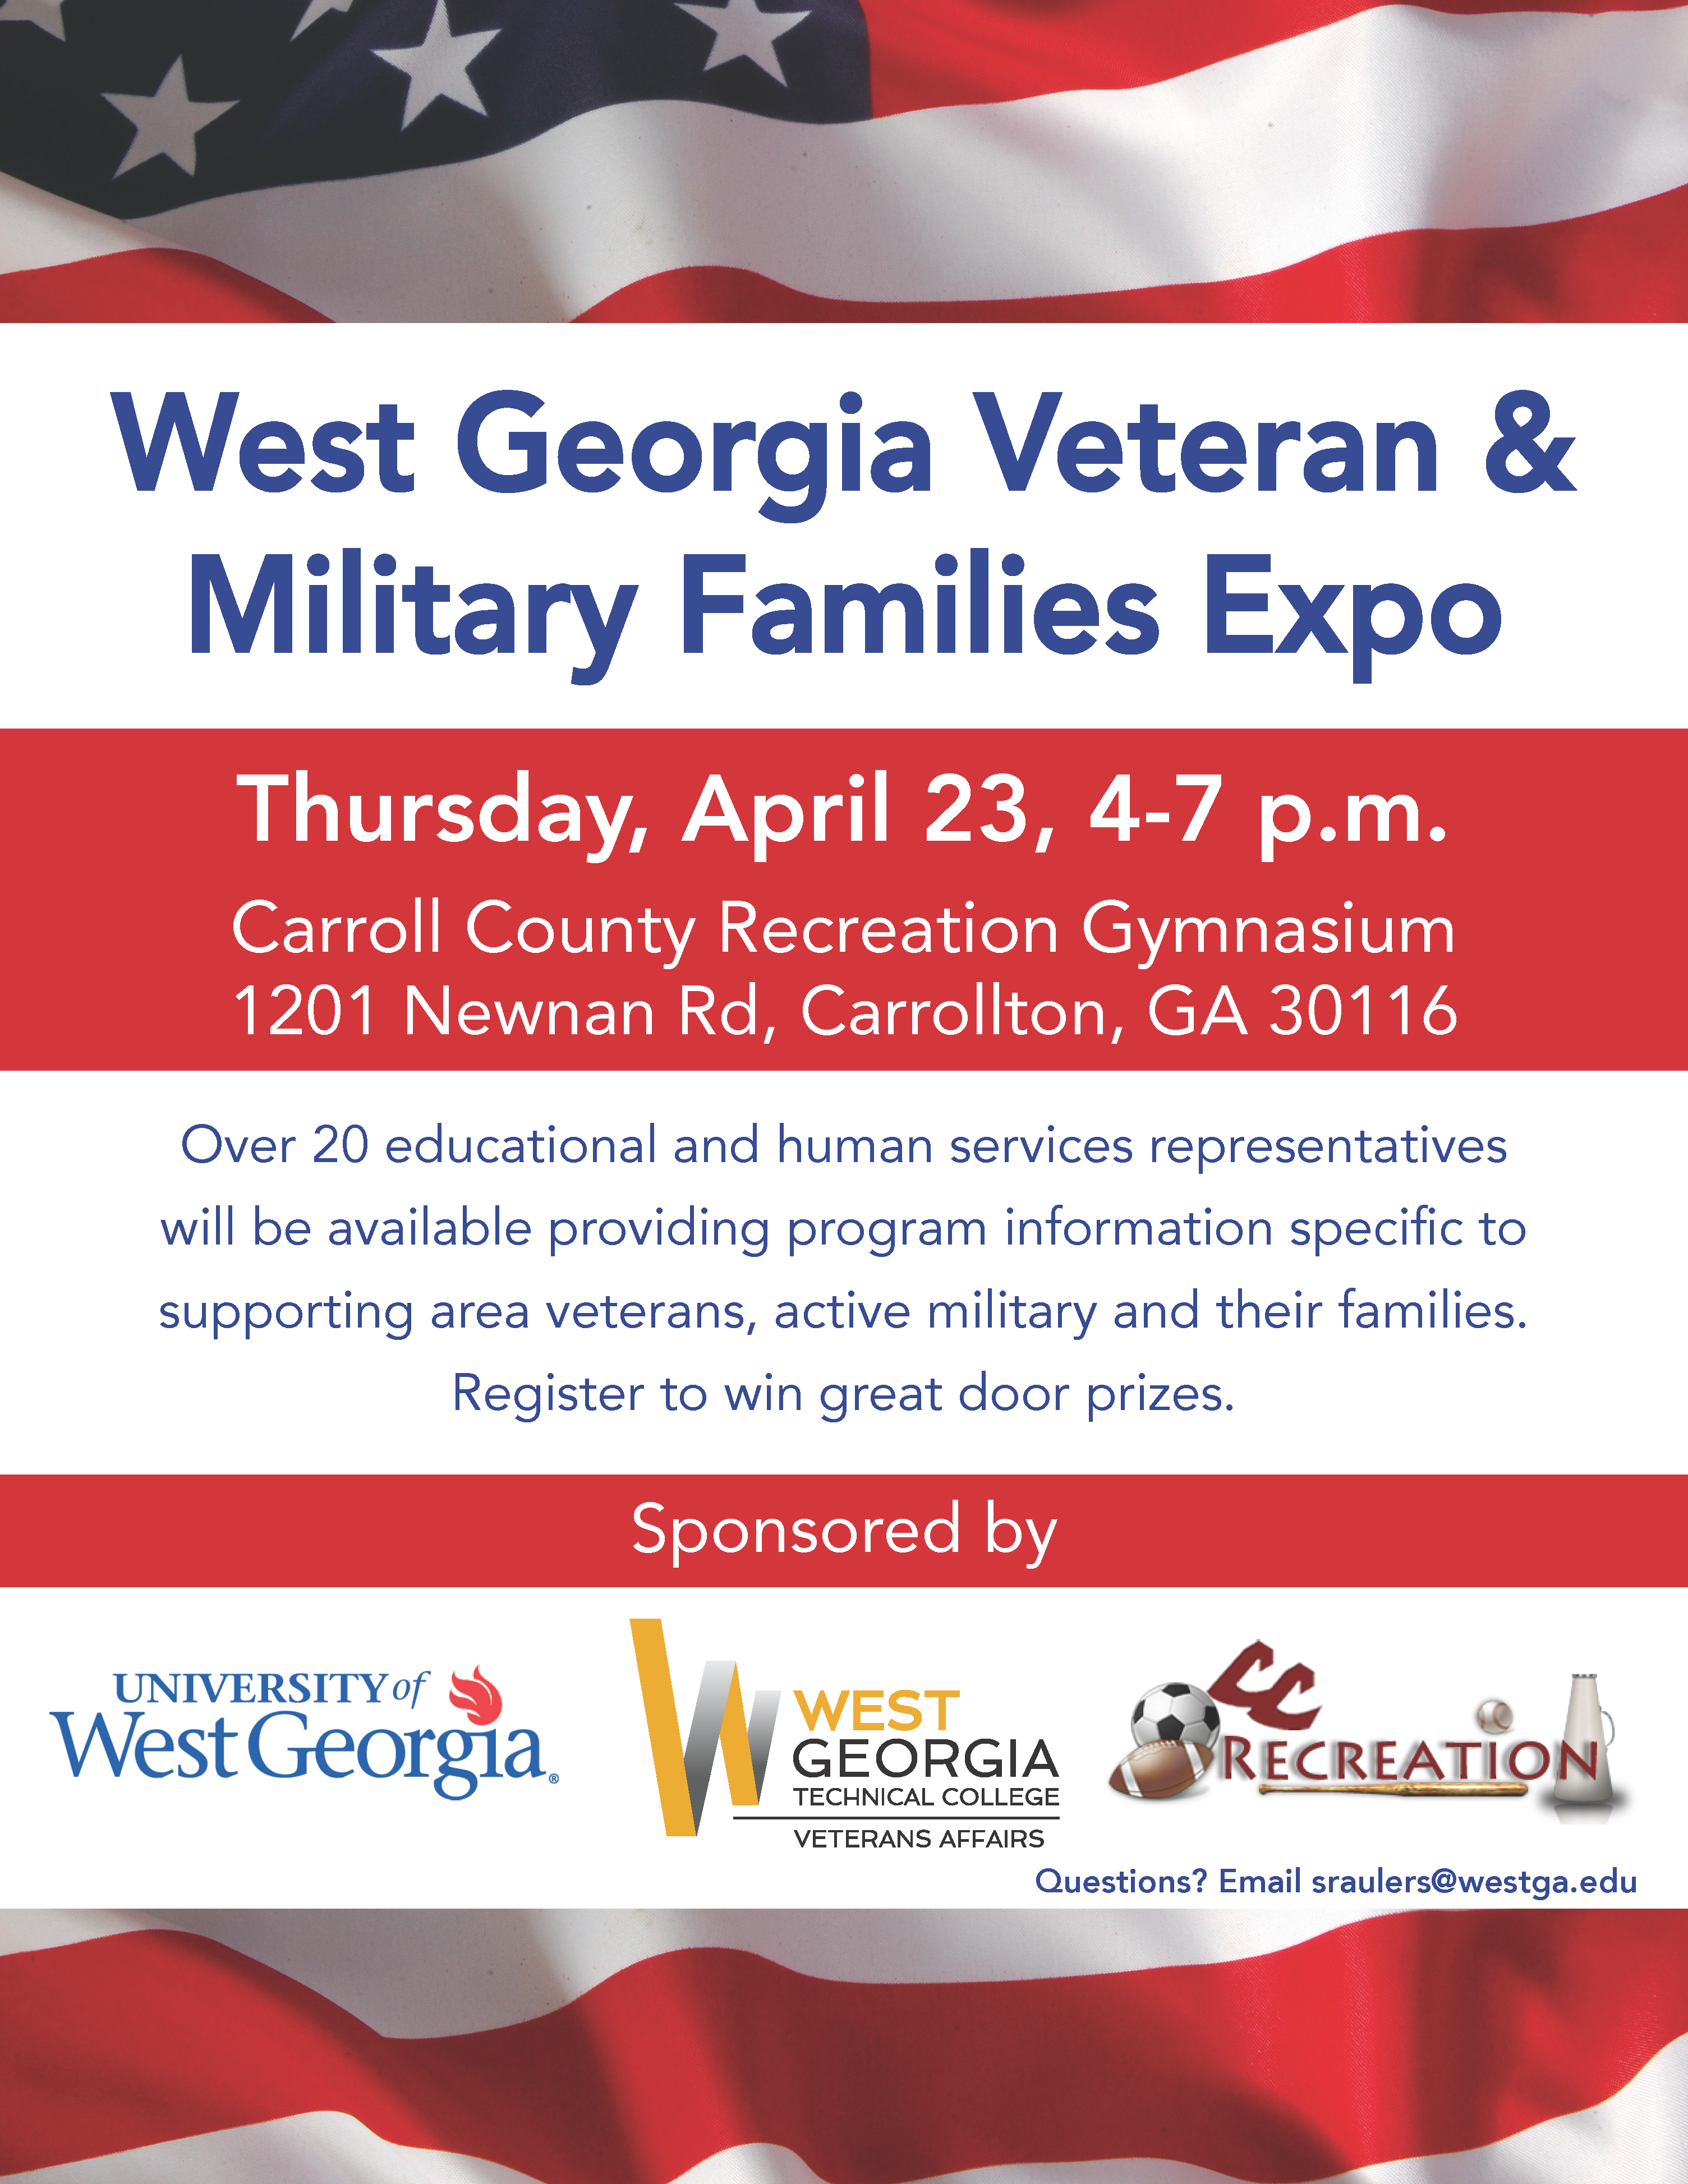 West Georgia Veteran & Military Families Expo